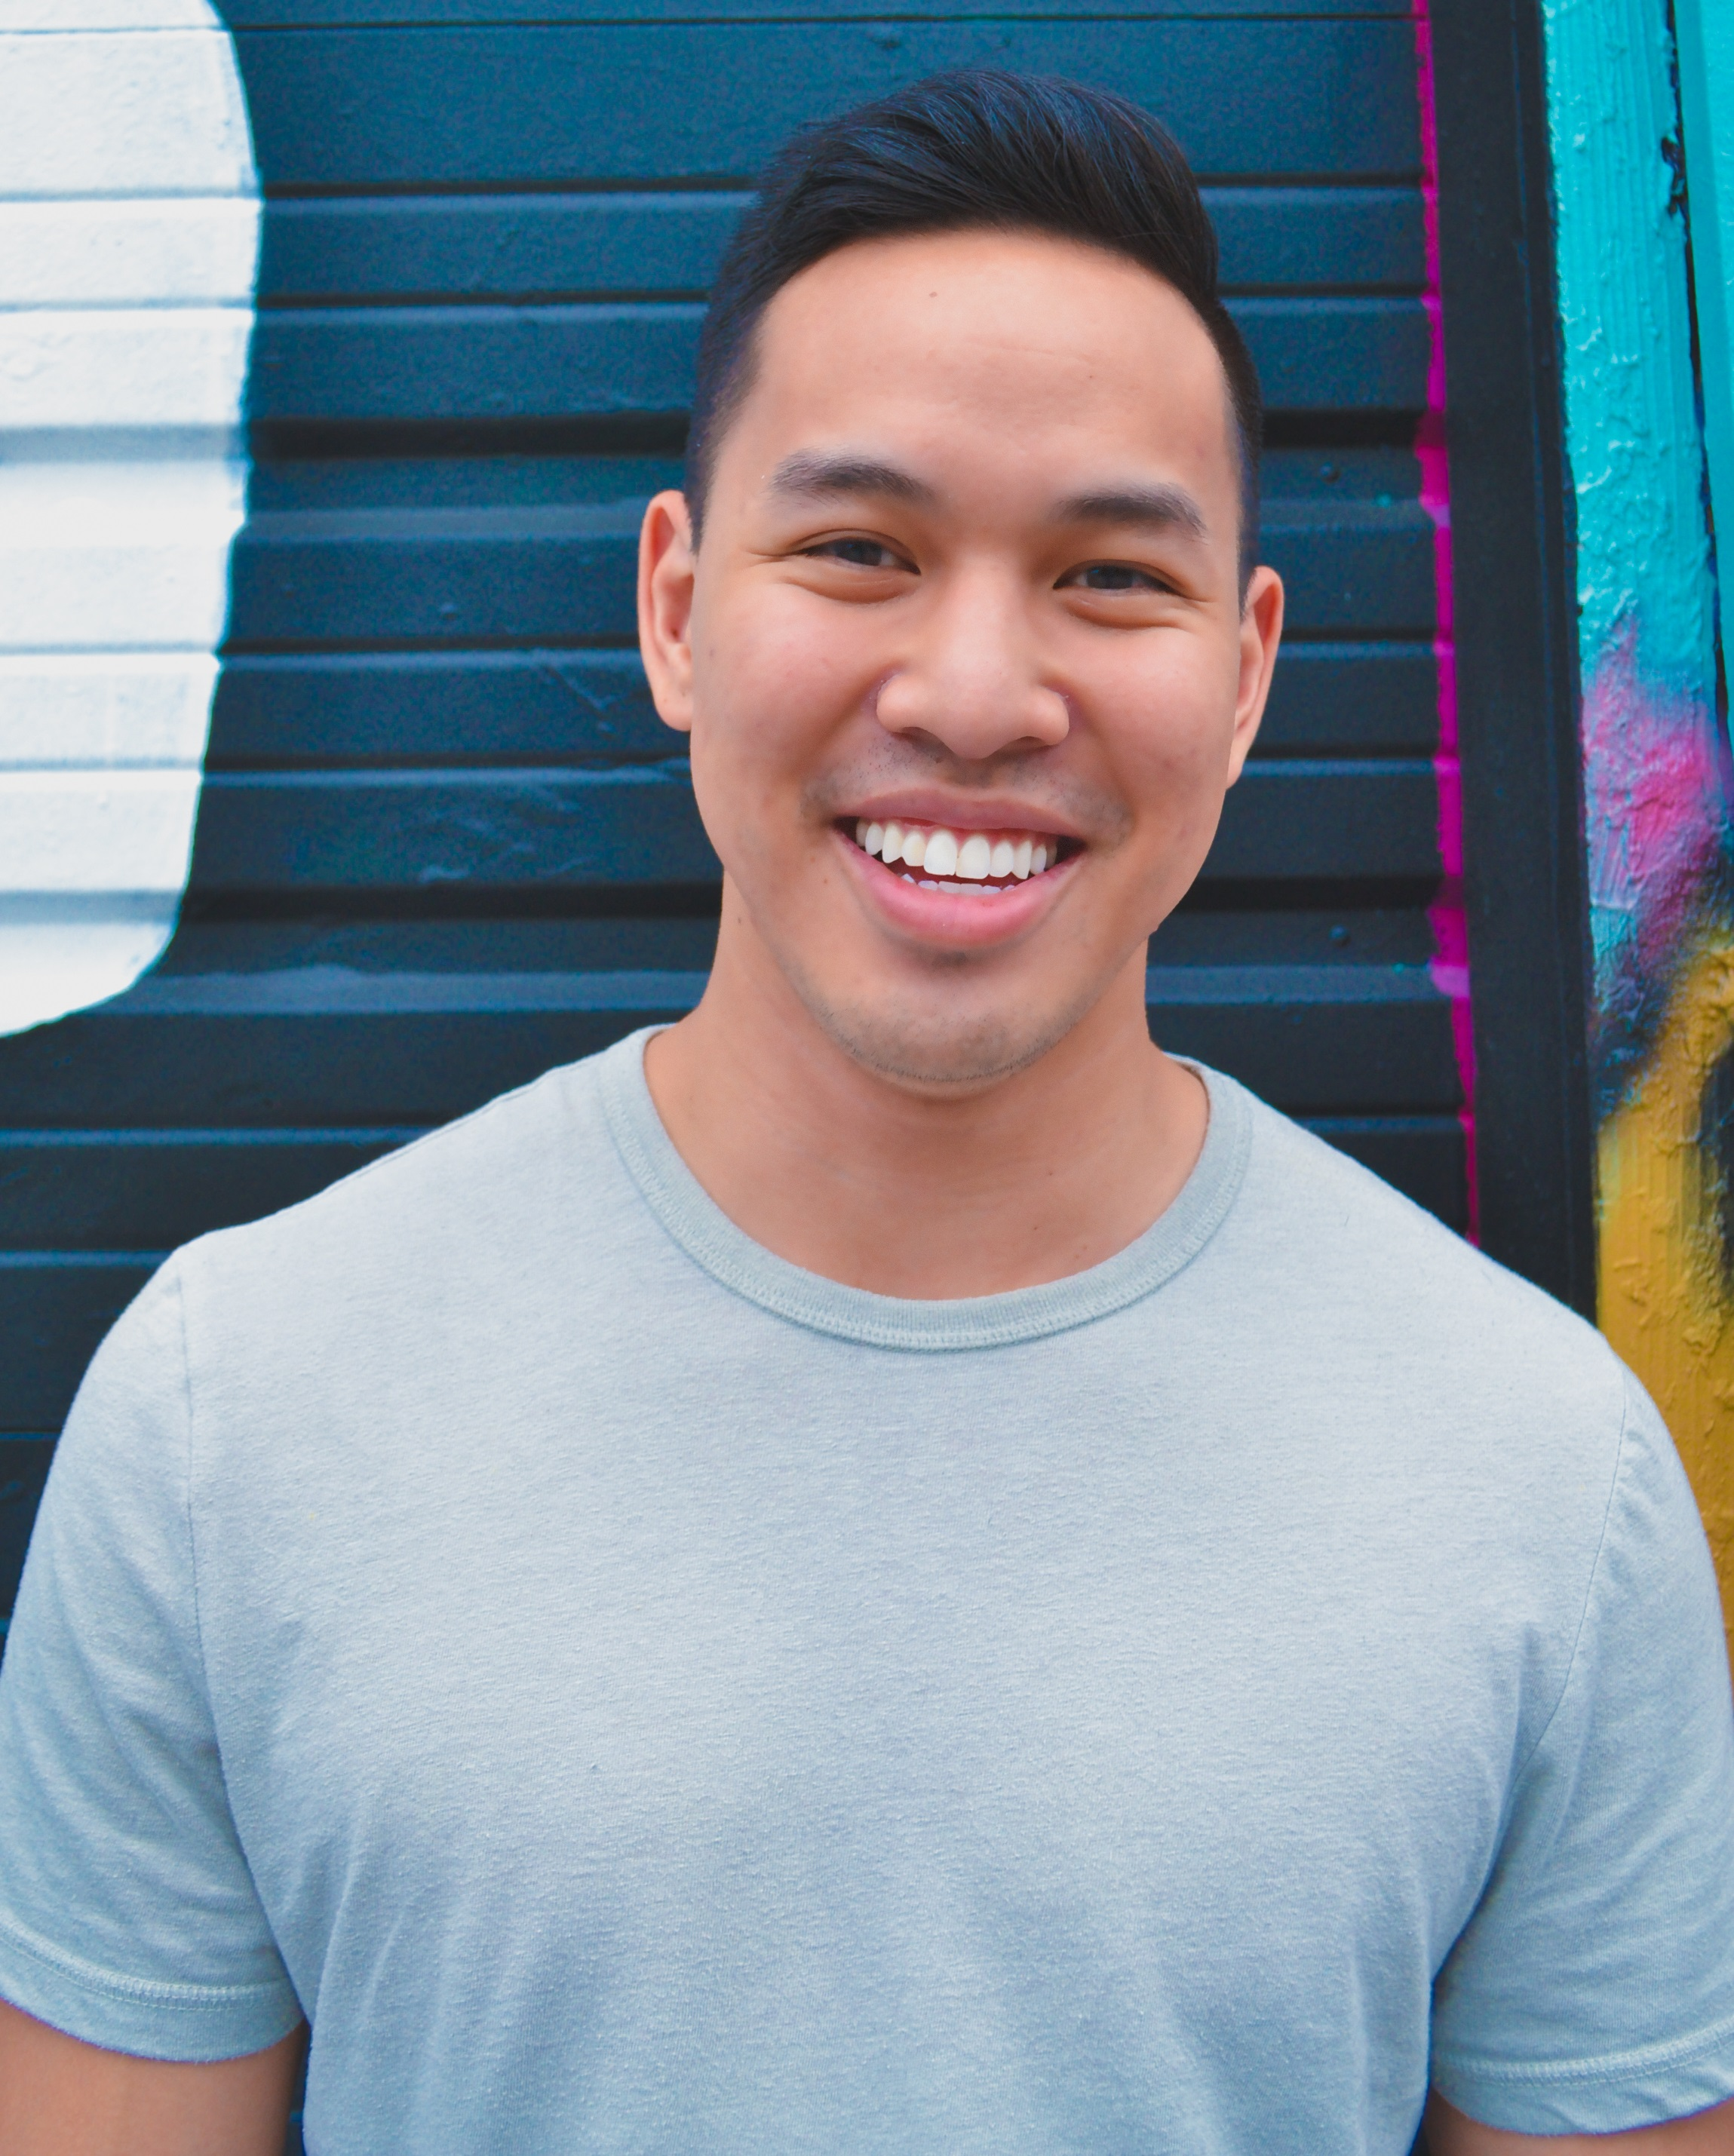 Anthony Bui-Tran